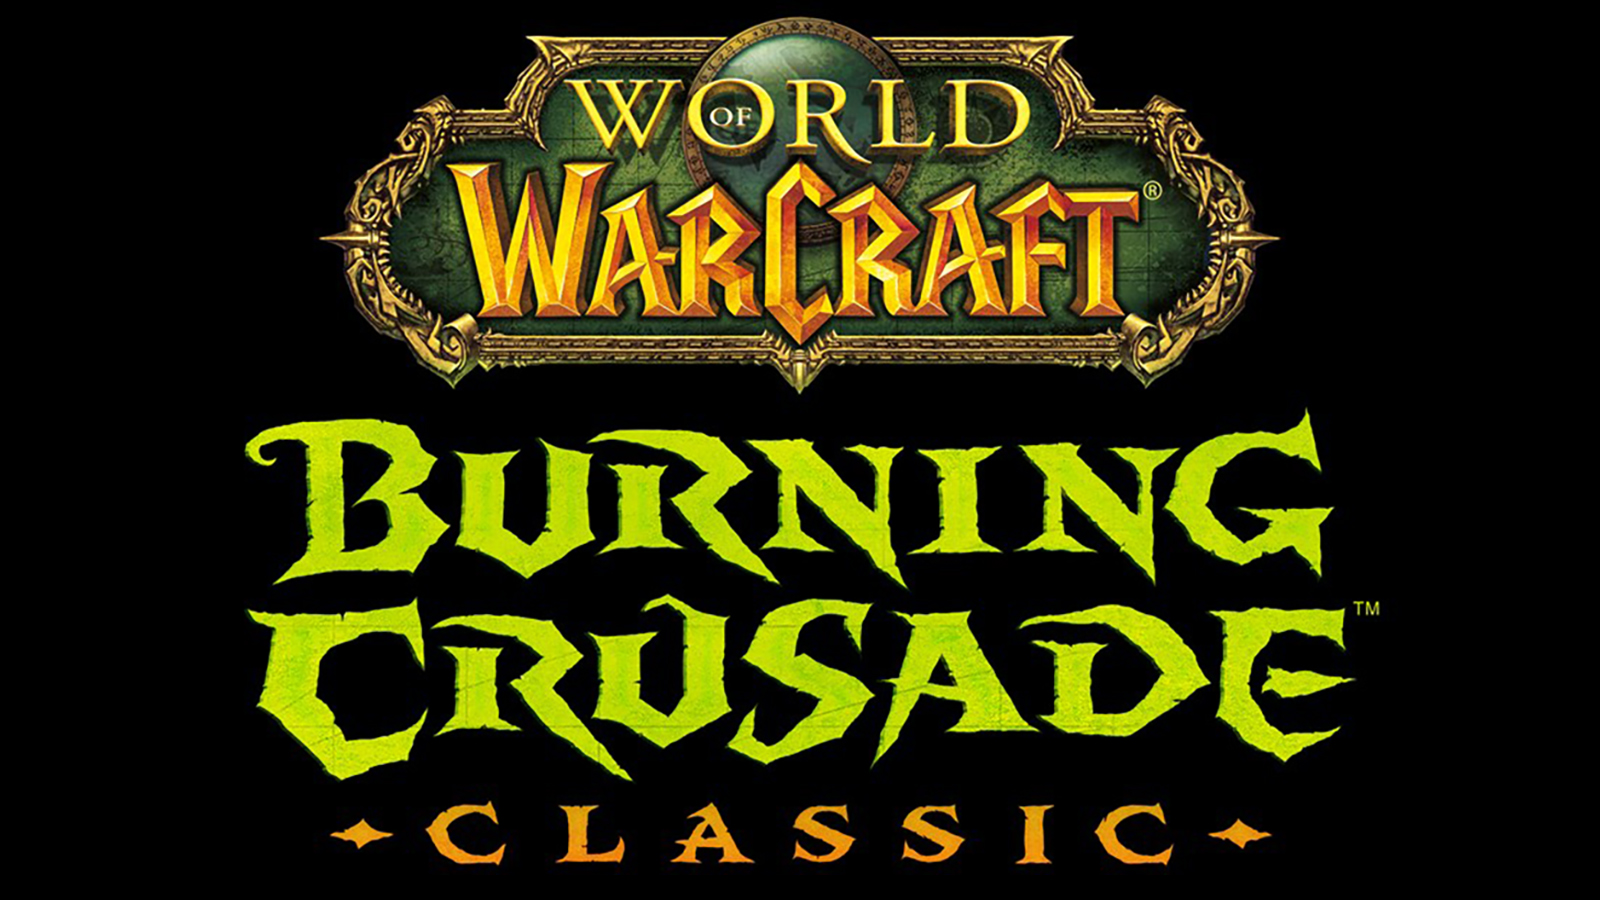 World of Warcraft Burning Crusade Classic Release Date